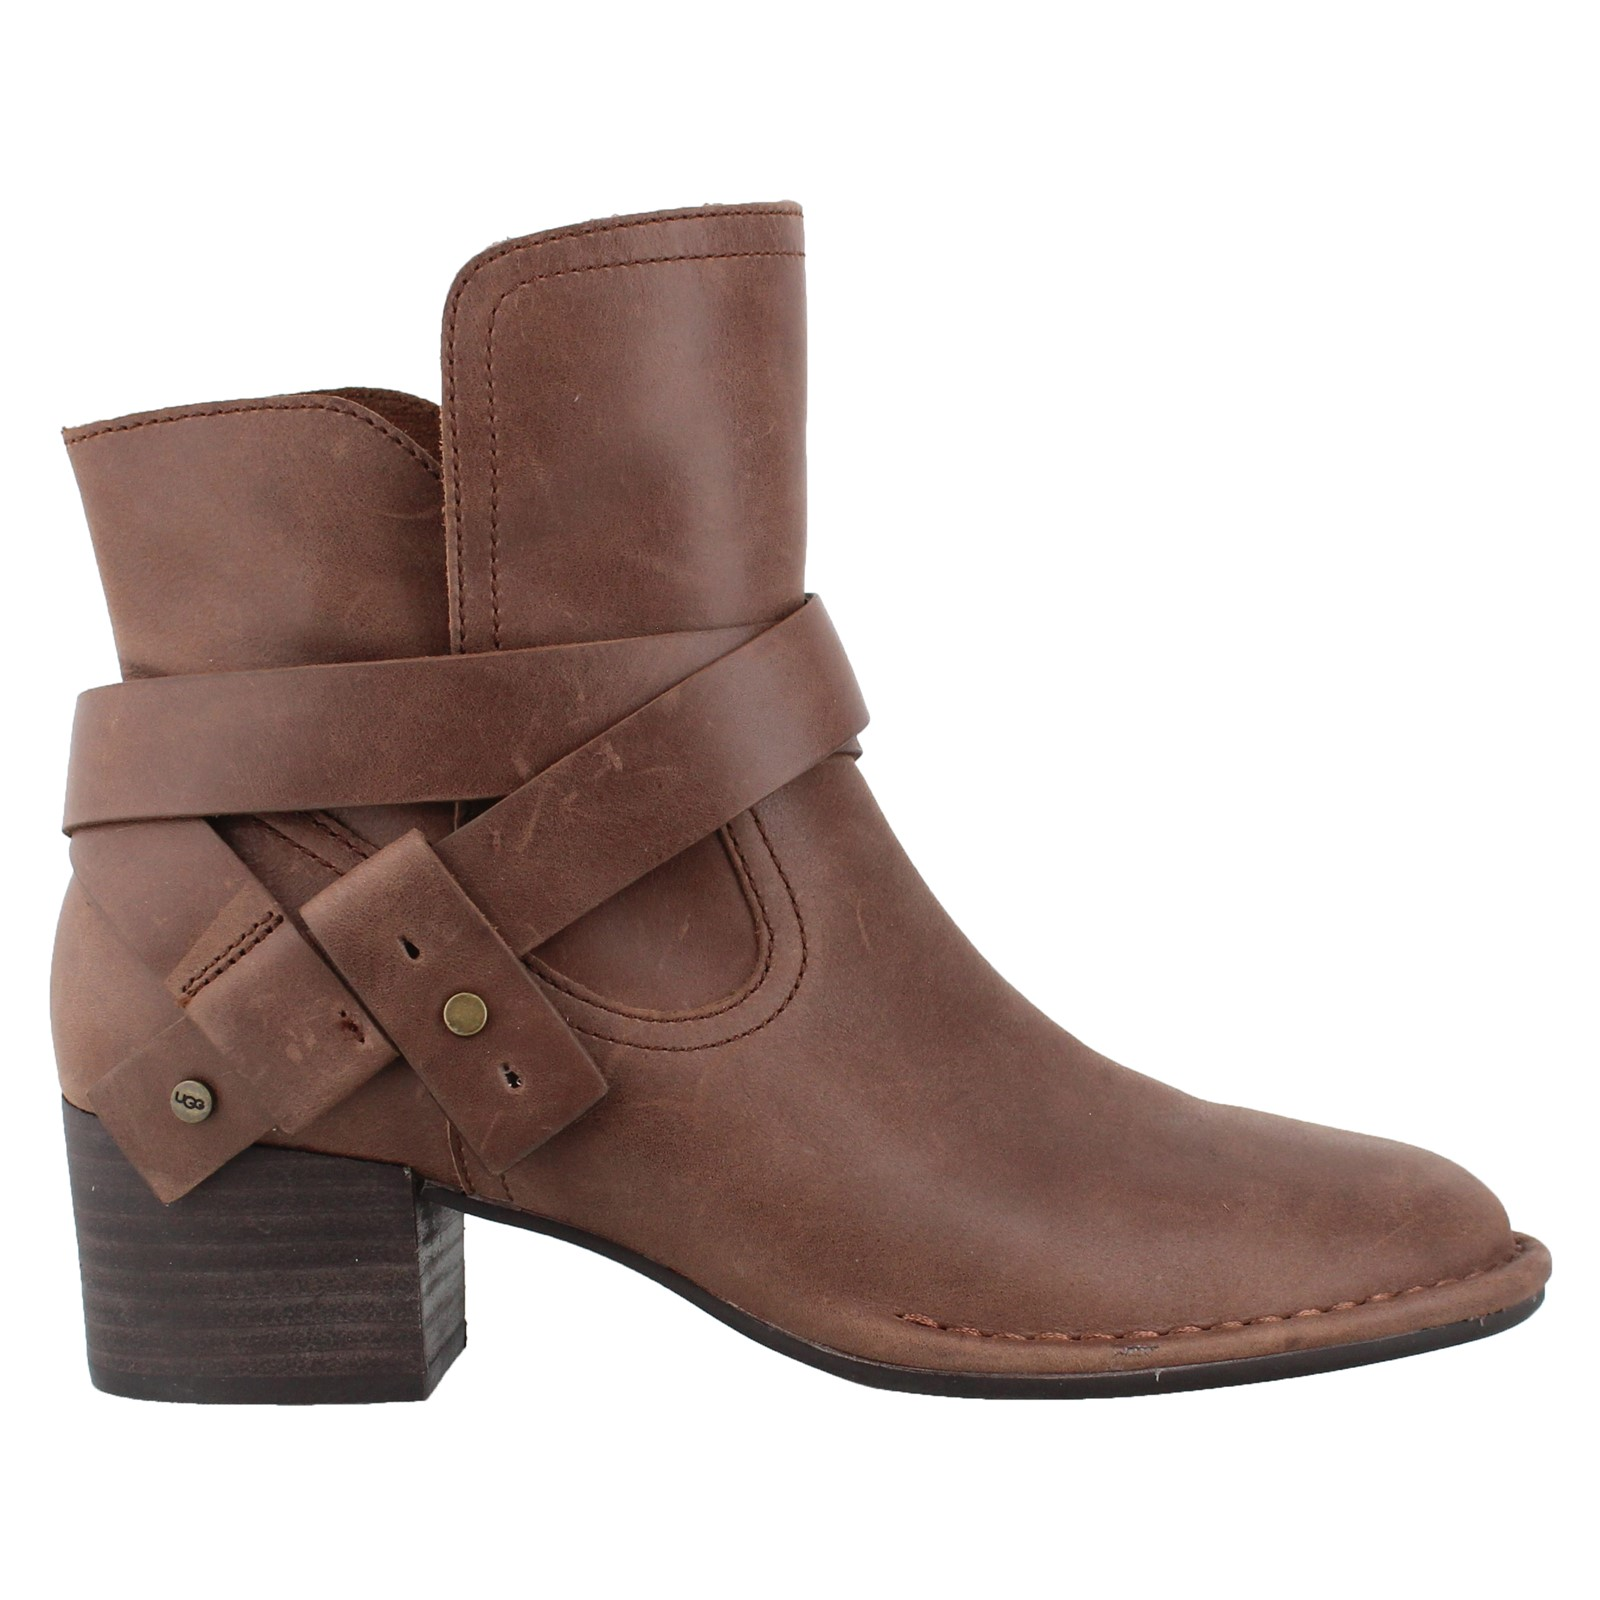 Women's Ugg, Elysian Ankle Boot